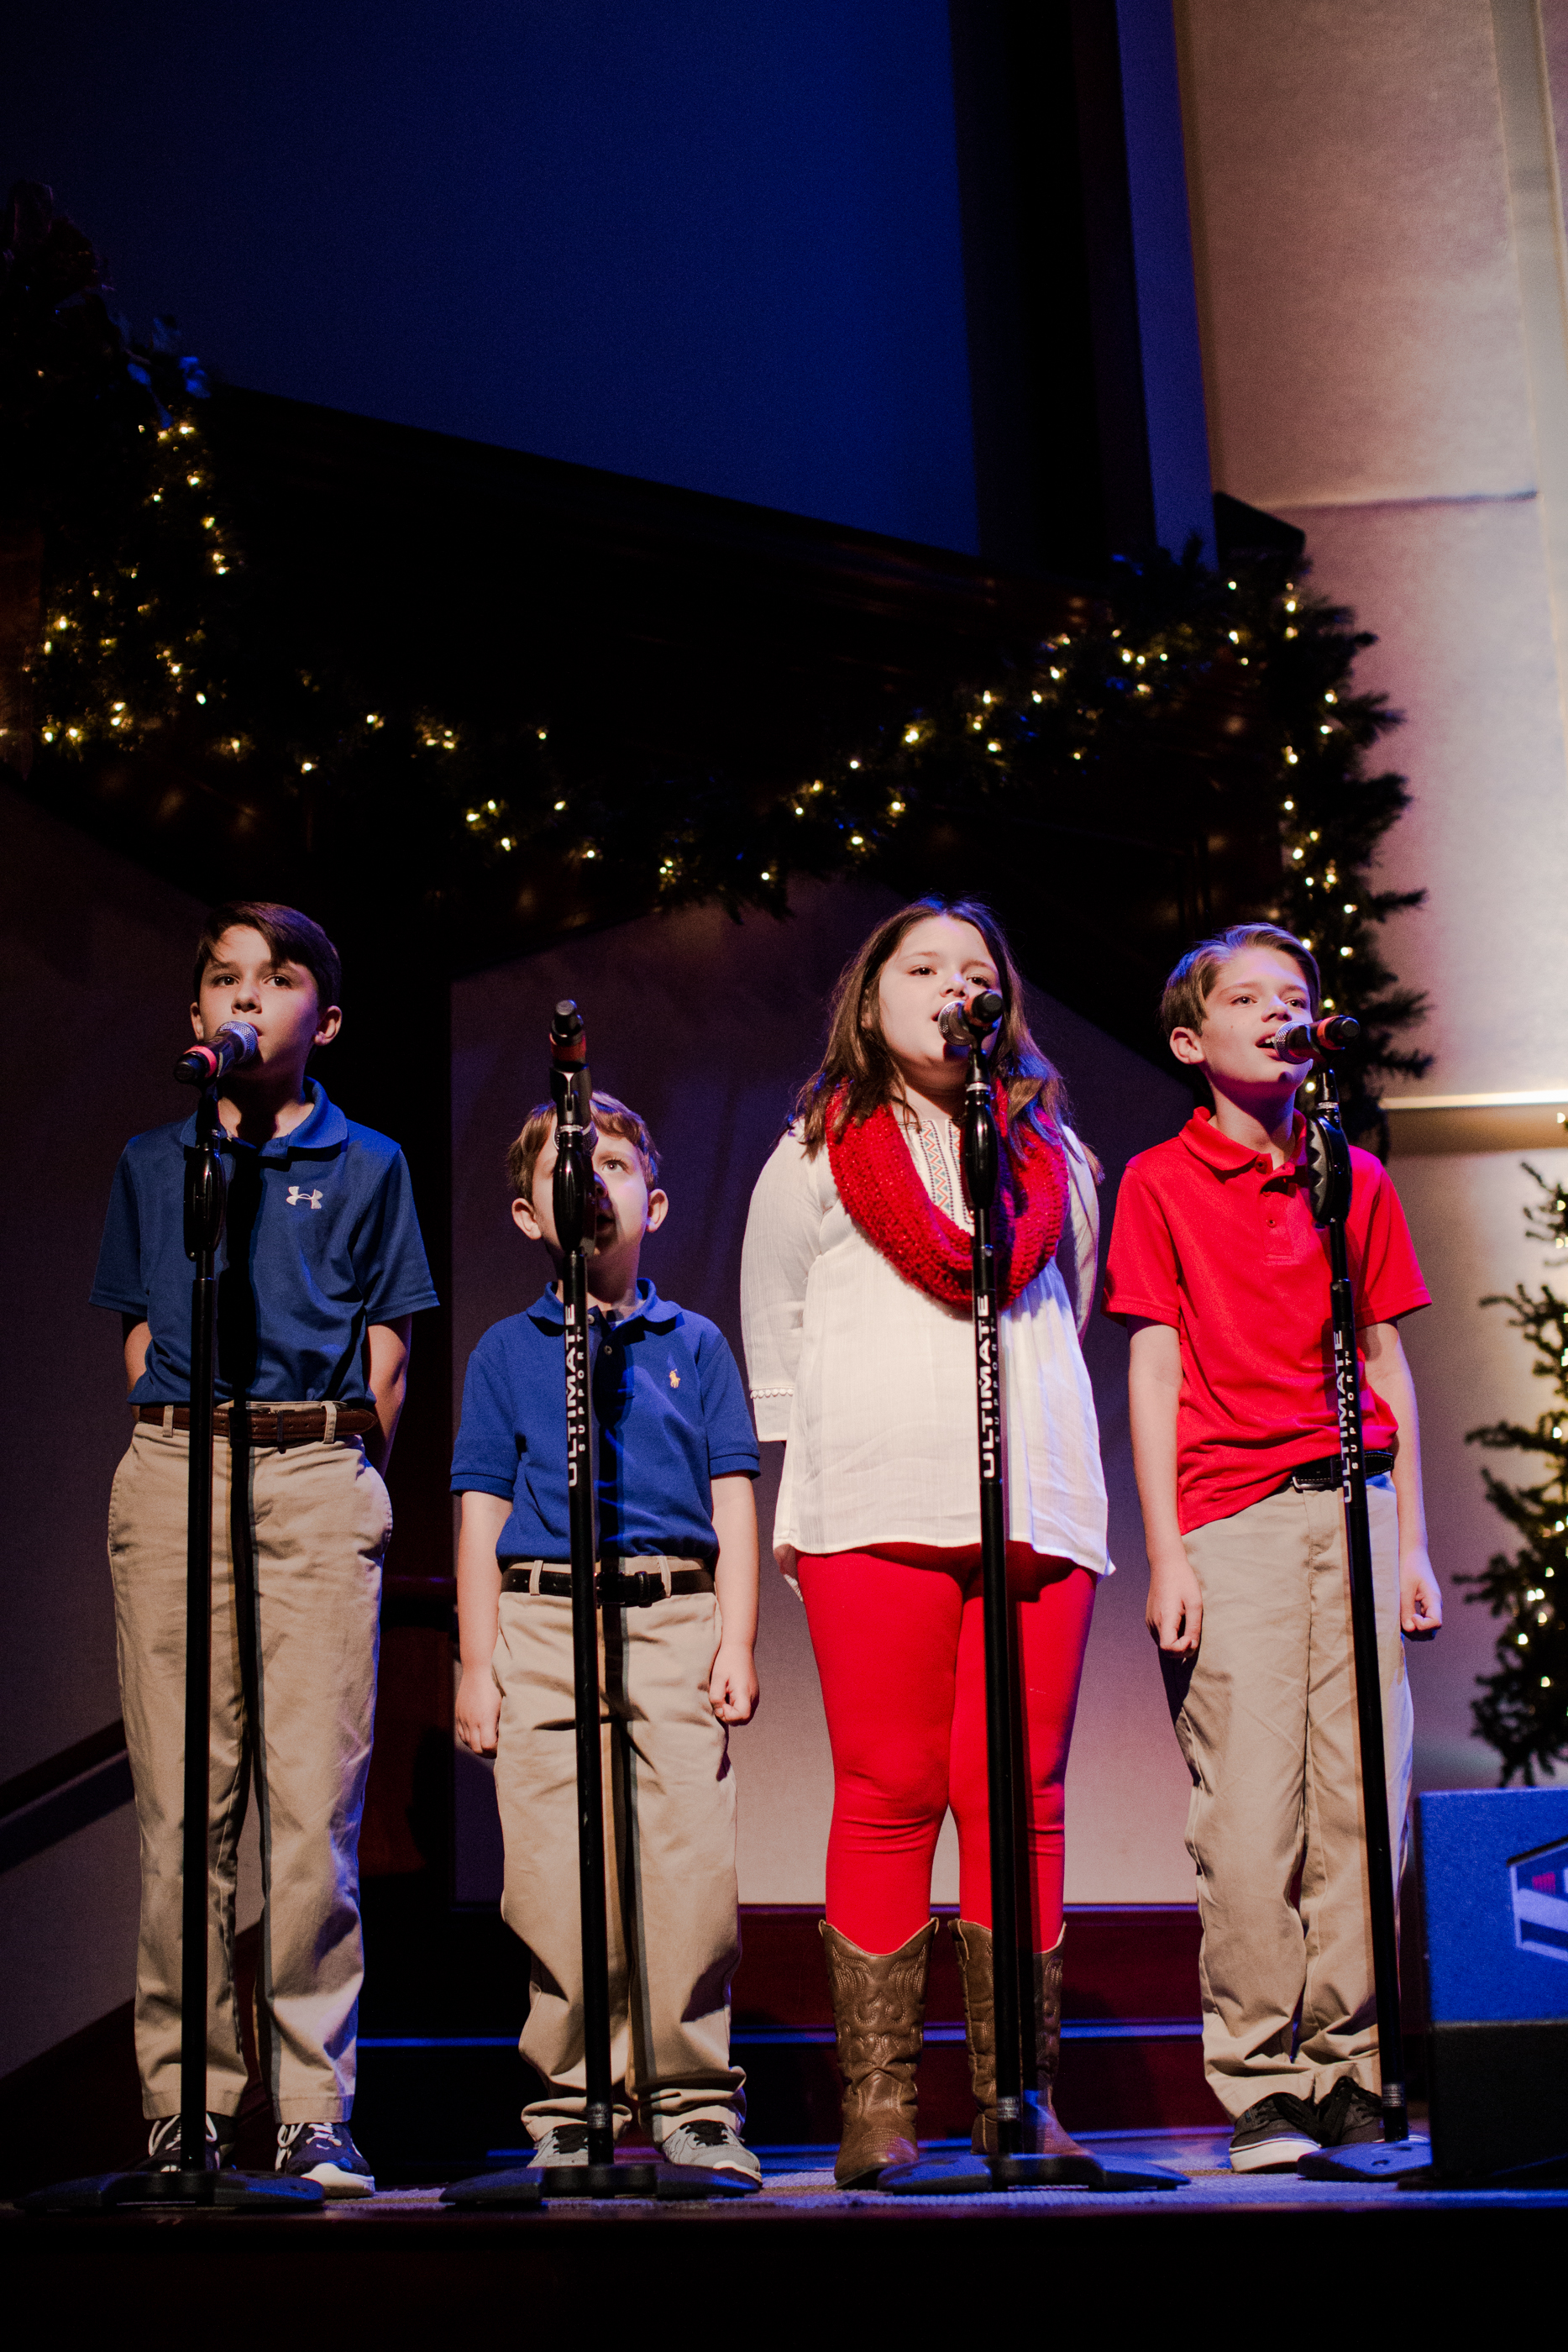 Photo by Amy Henry Photography. Jenny Pruitt's children joined her to sing one of her songs at  Creation Waits  Advent Offering at Oak Mountain Presbyterian Church November 29, 2016.